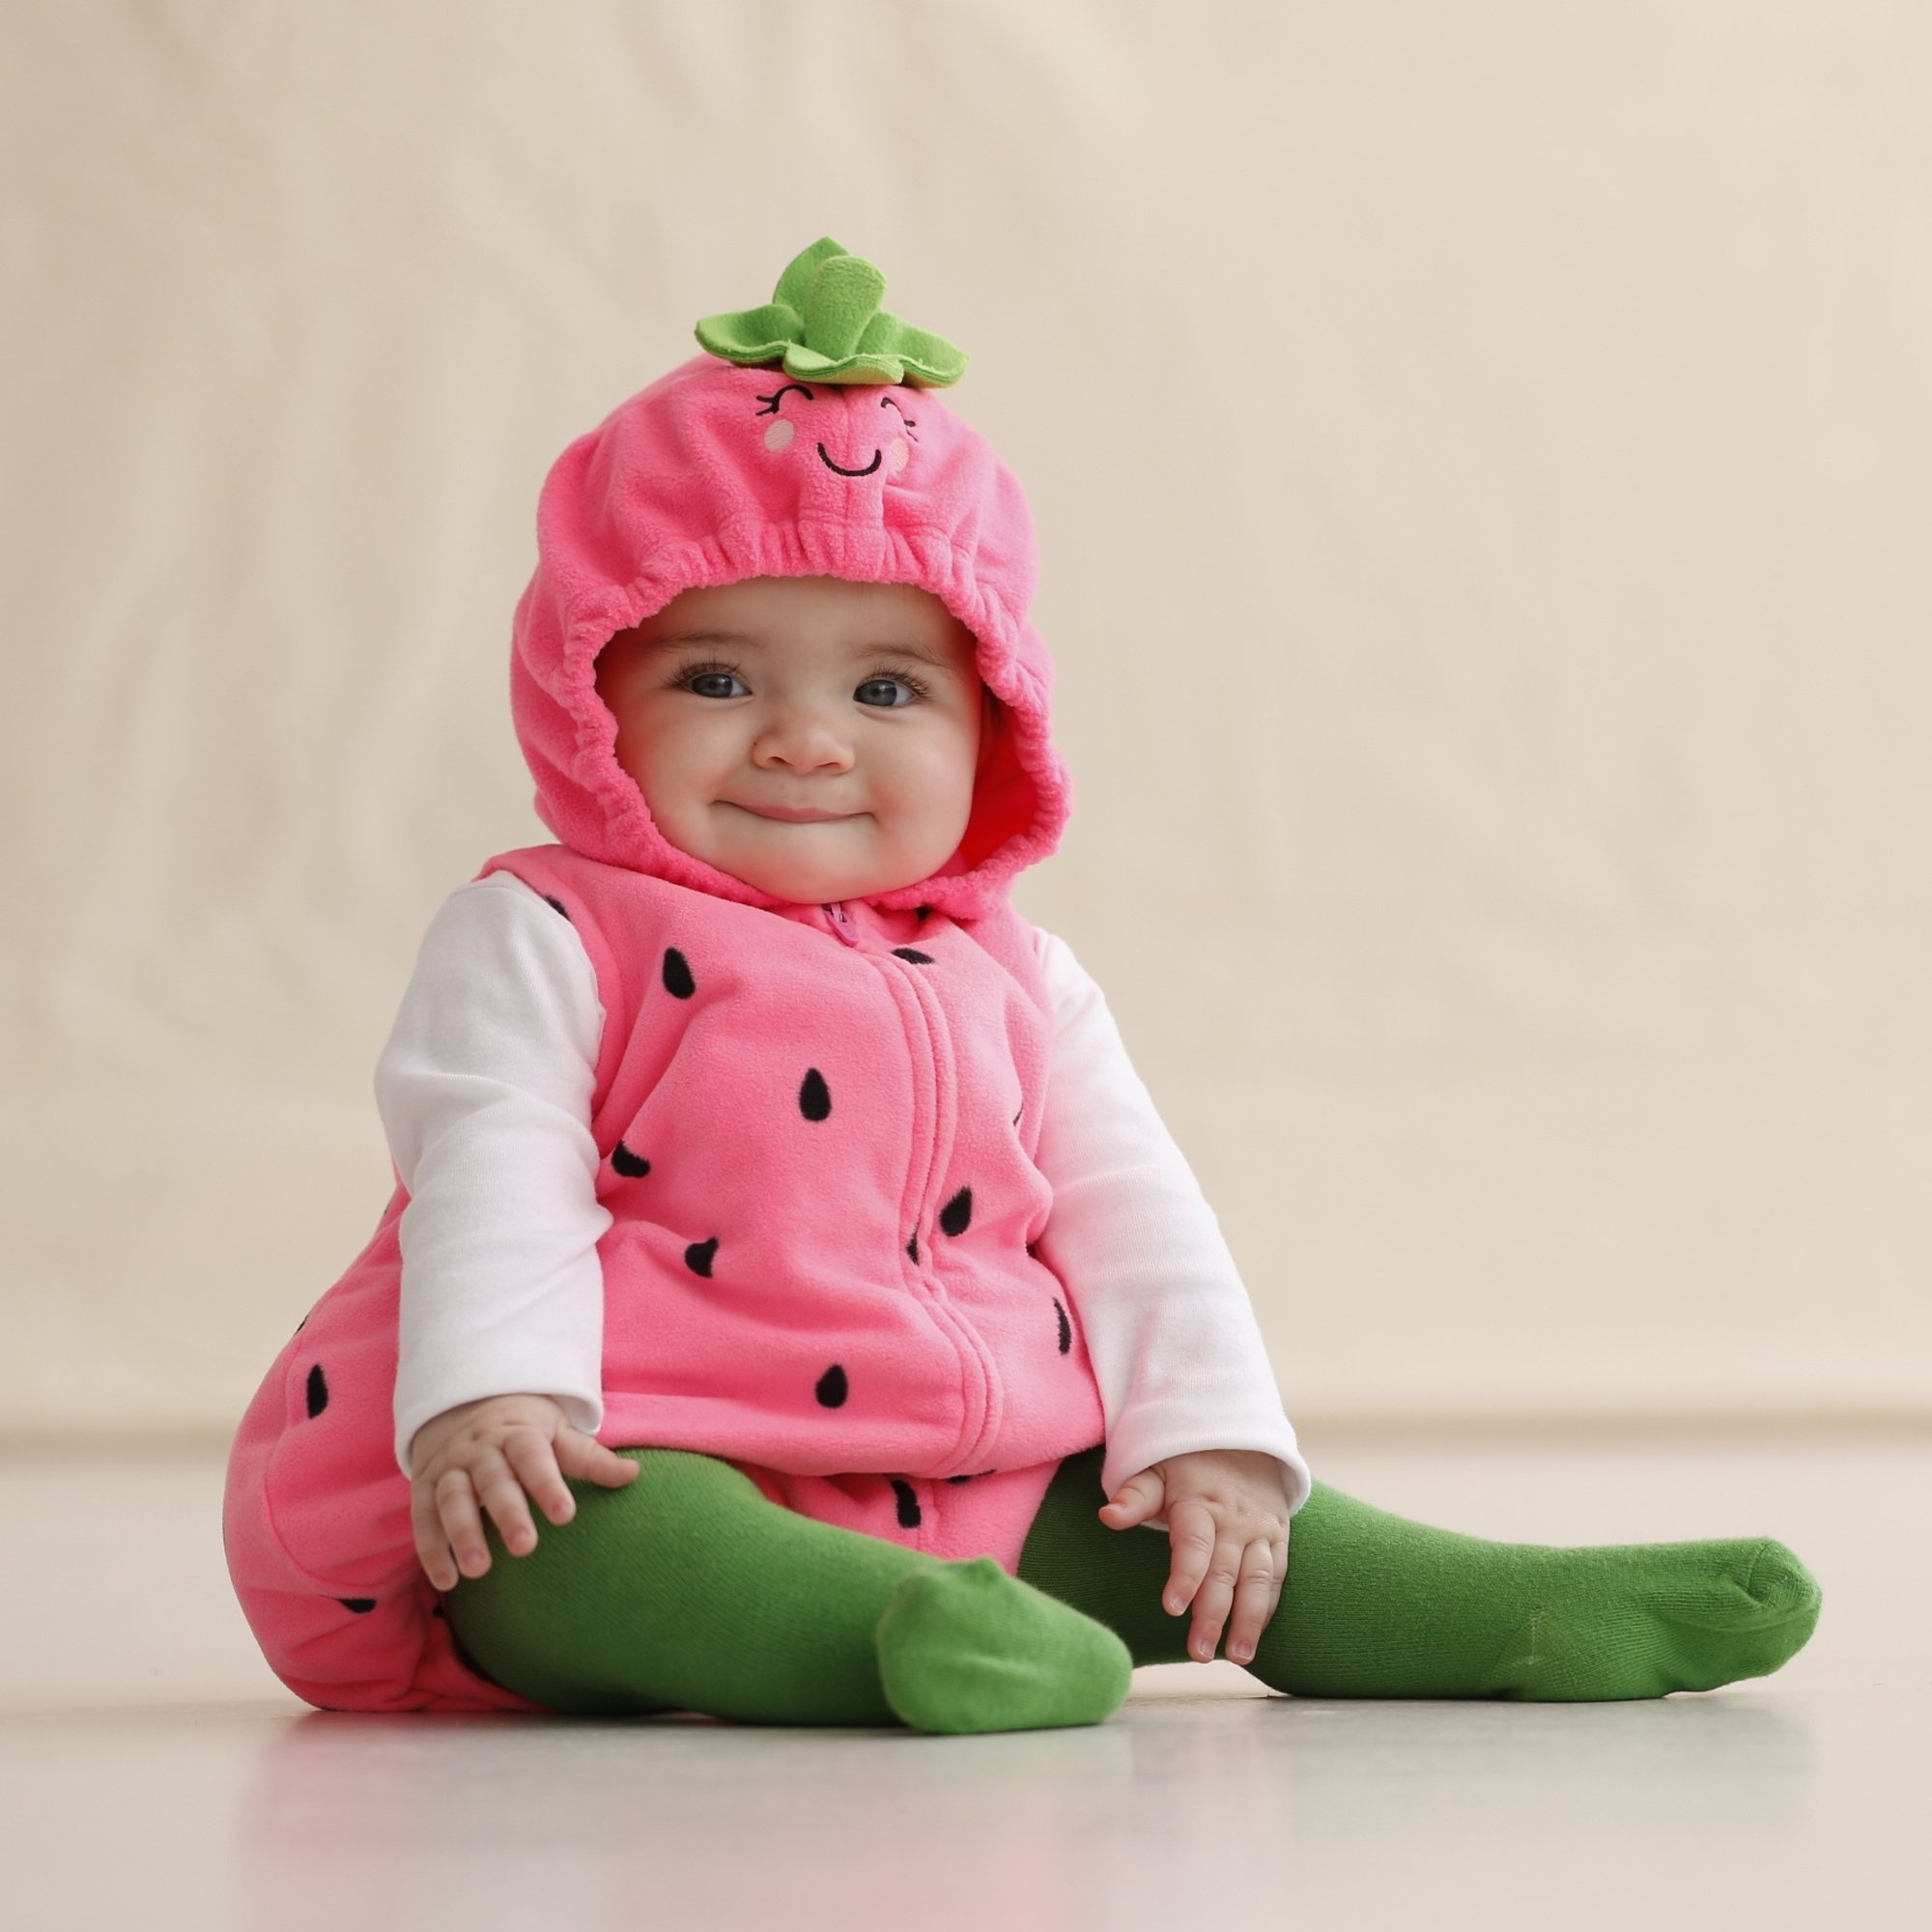 10 Most Recommended Baby Girl Halloween Costume Ideas strawberry halloween costume baby girl new arrivals bebe  sc 1 st  Unique Ideas 2018 & 10 Most Recommended Baby Girl Halloween Costume Ideas